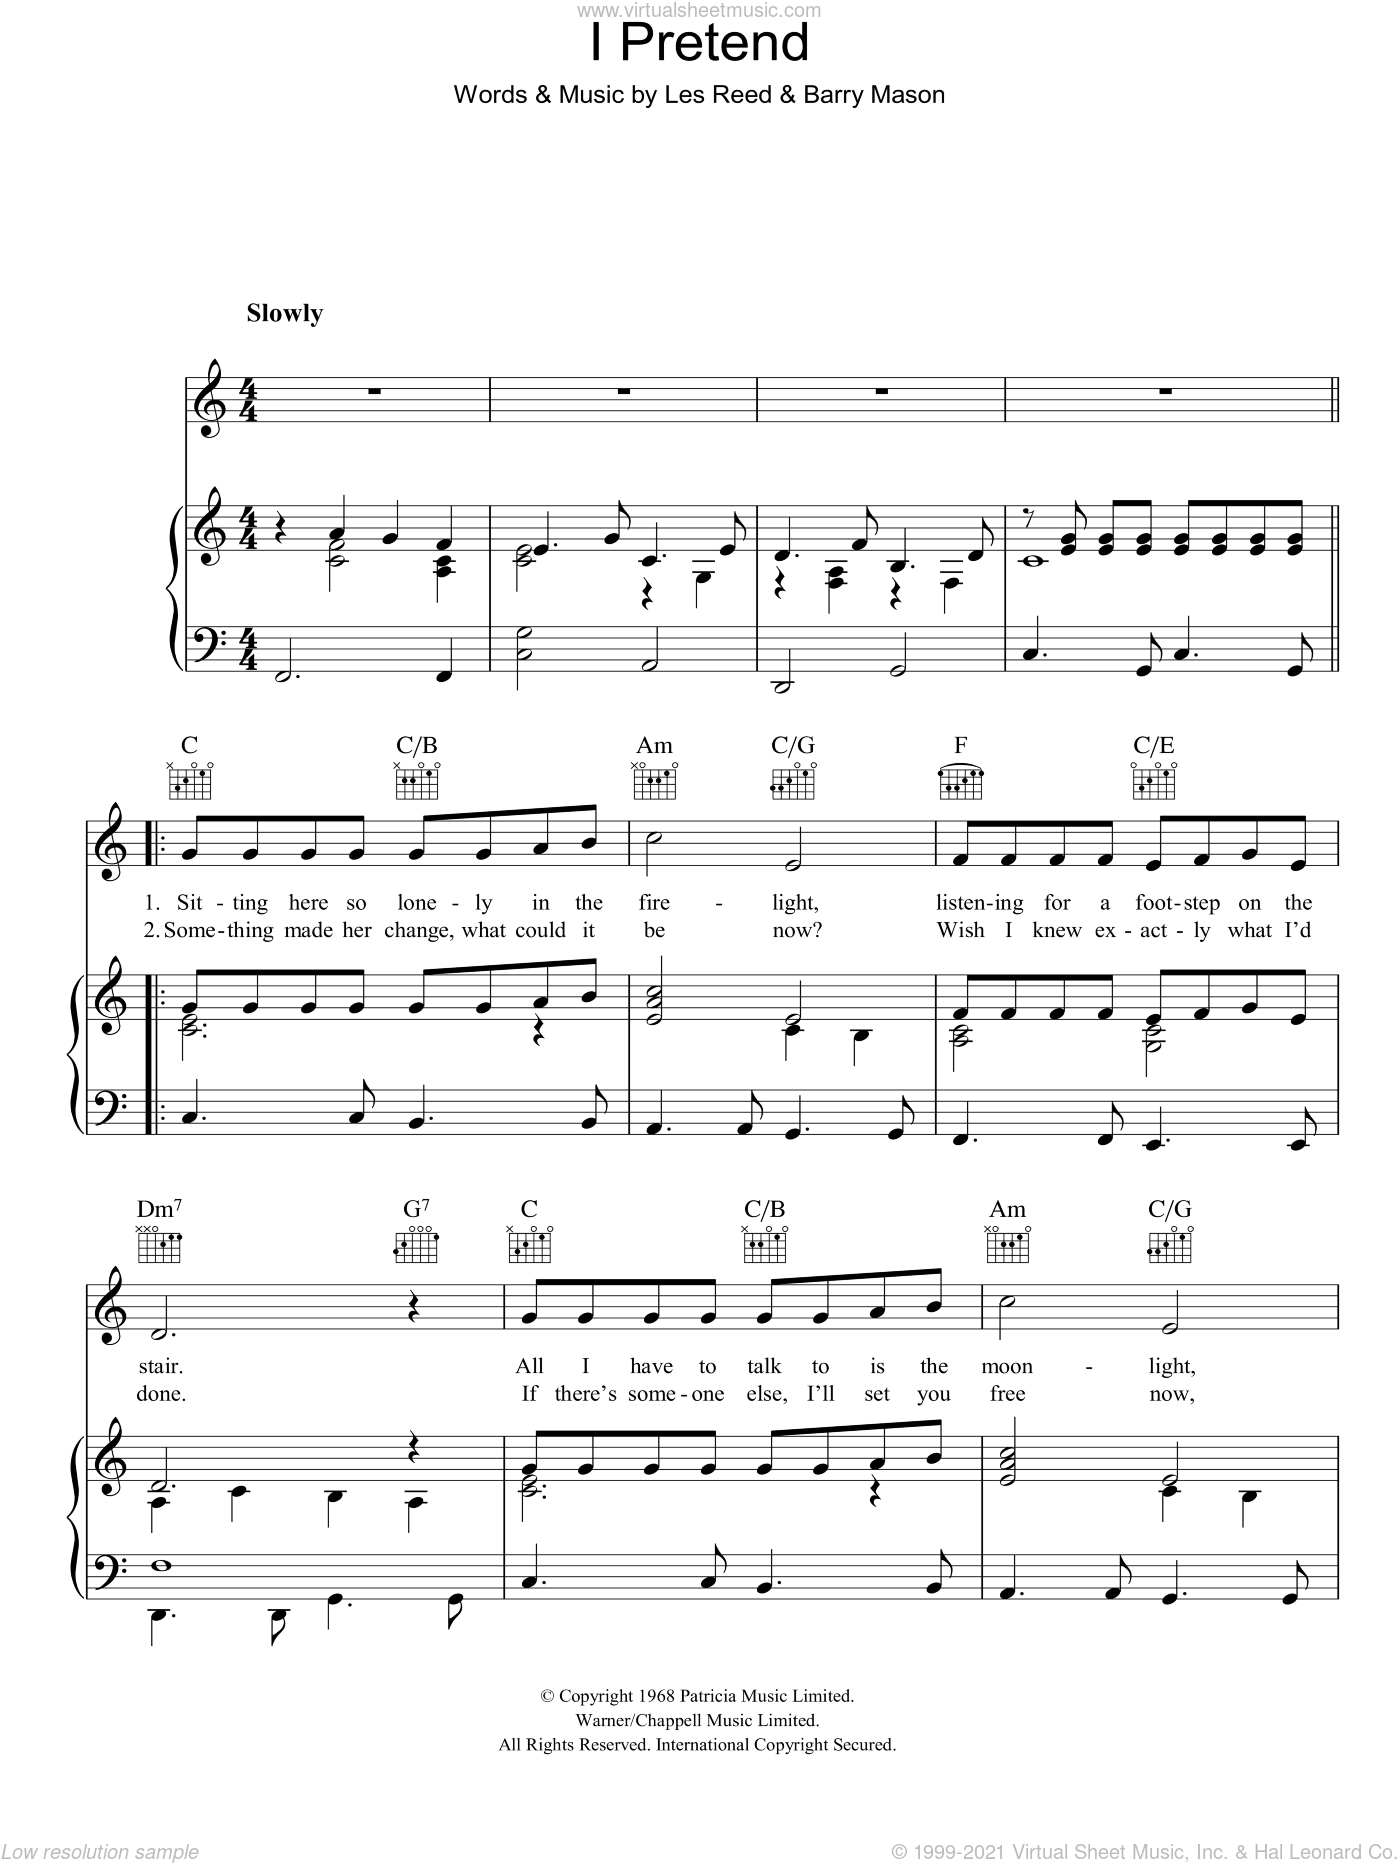 I Pretend sheet music for voice, piano or guitar by Barry Mason